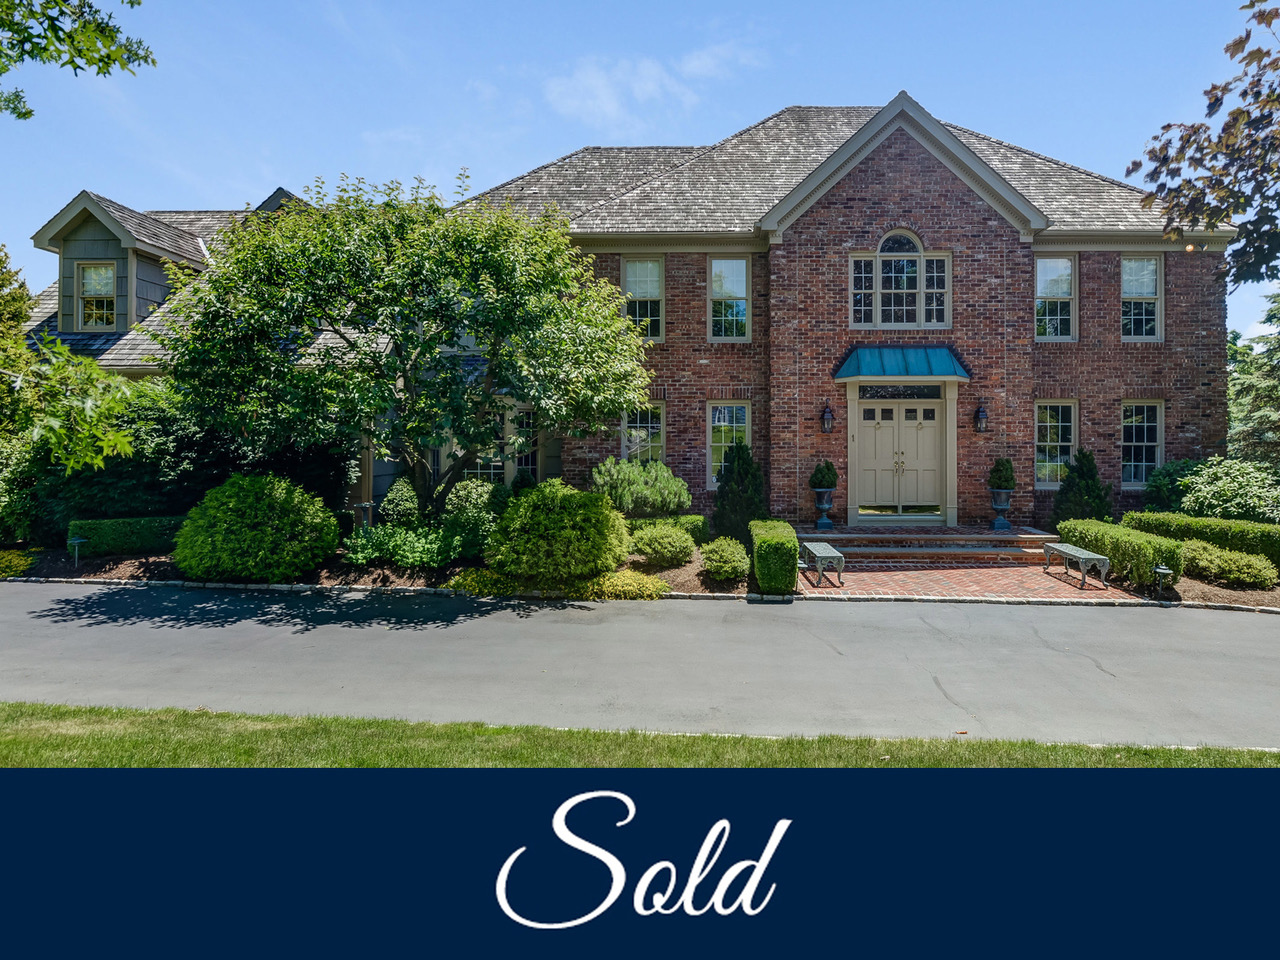 Sold front.jpg